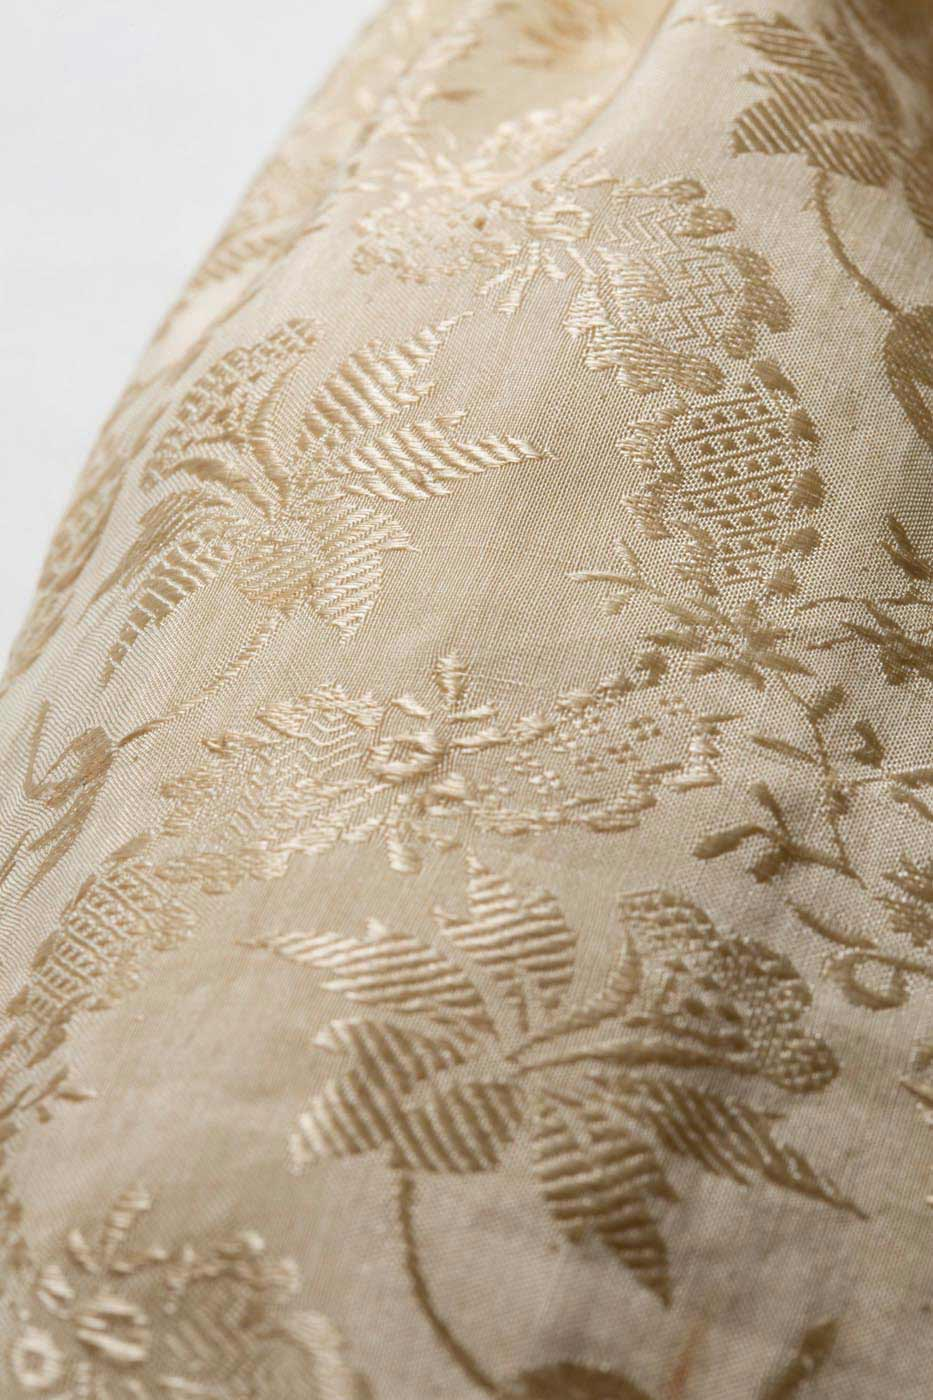 Detail of damask silk fabric. - click to view larger image